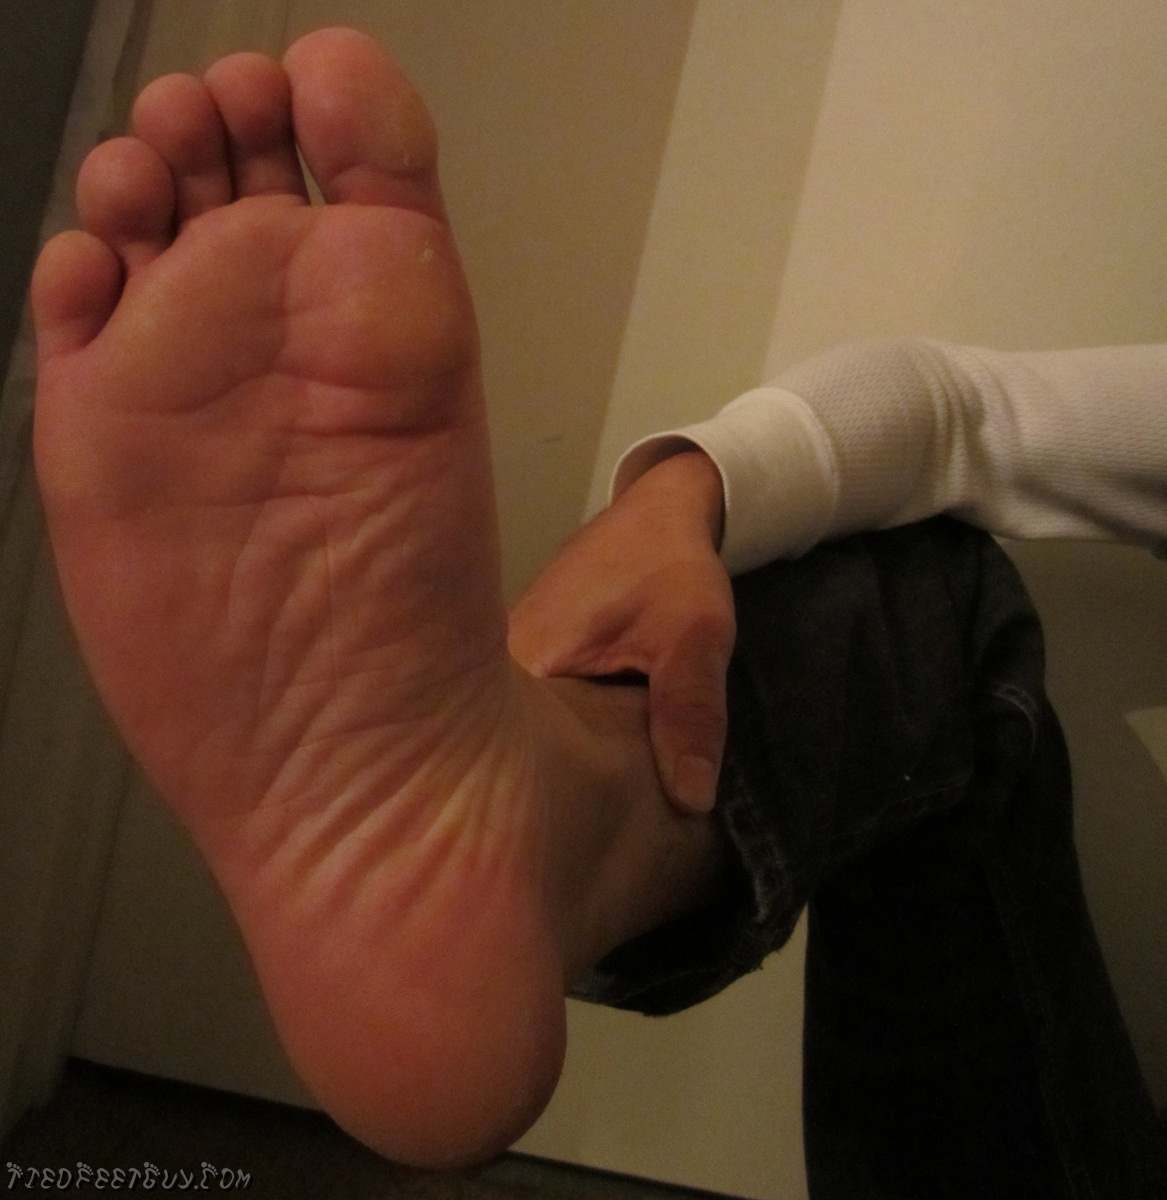 Forced to smell male feet